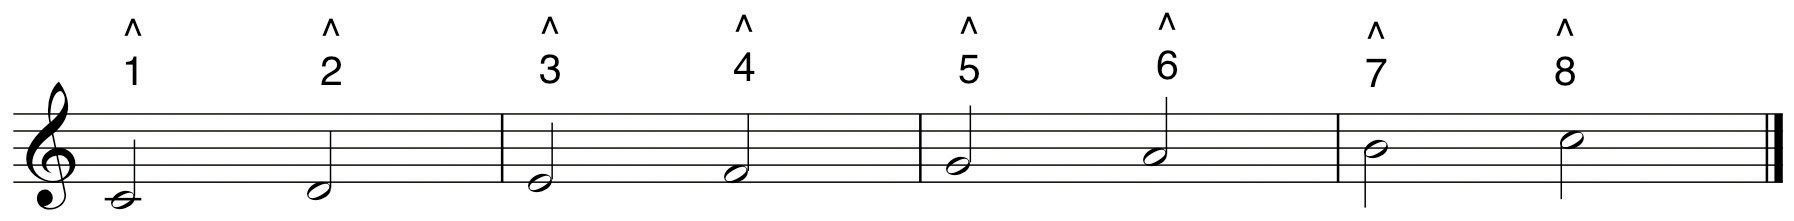 The Elements Of Pitchsound Symbol And Tone